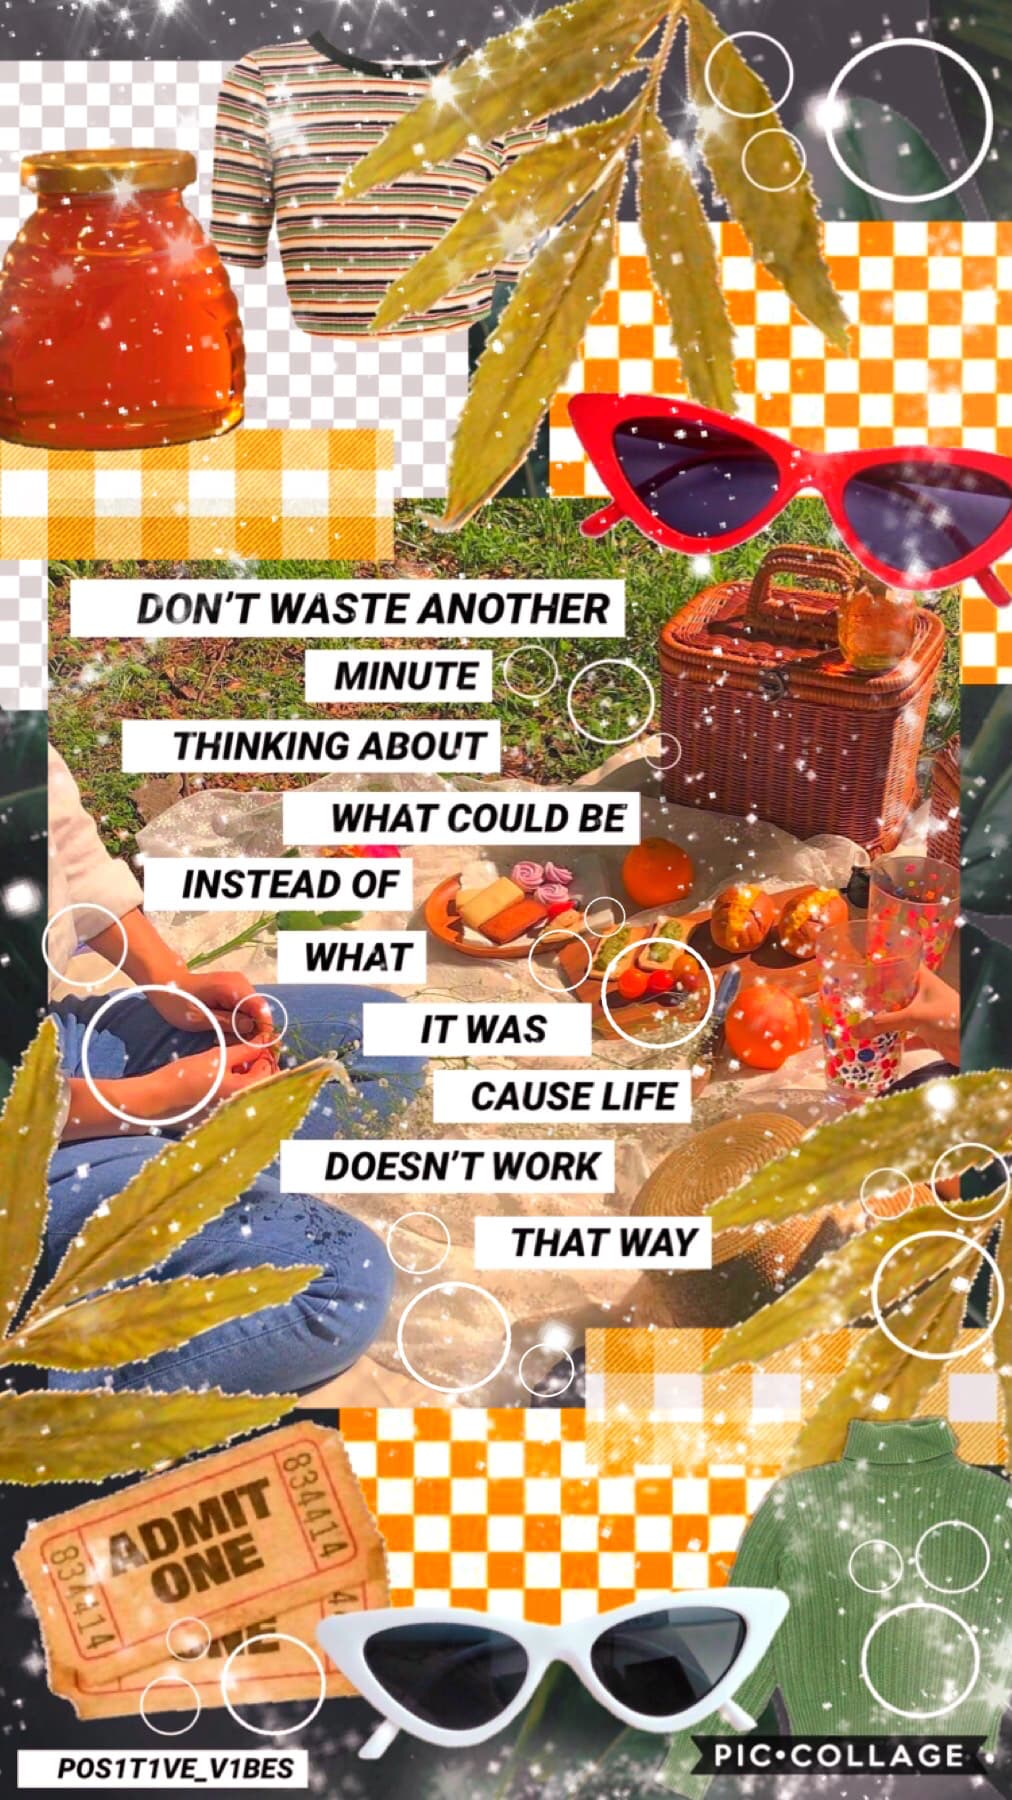 💫lol sorry for this cluttered collage ¯\_(ツ)_/¯ 💫guESS whAT I'm dancing at my cousins wedding next month w my sisters aHHH all my aunts be judging us haha💫I'm acting for my english class ahjsj gl to me hopefully I don't screw up💫 #PCONLY #CLUTTERED #WEDDI